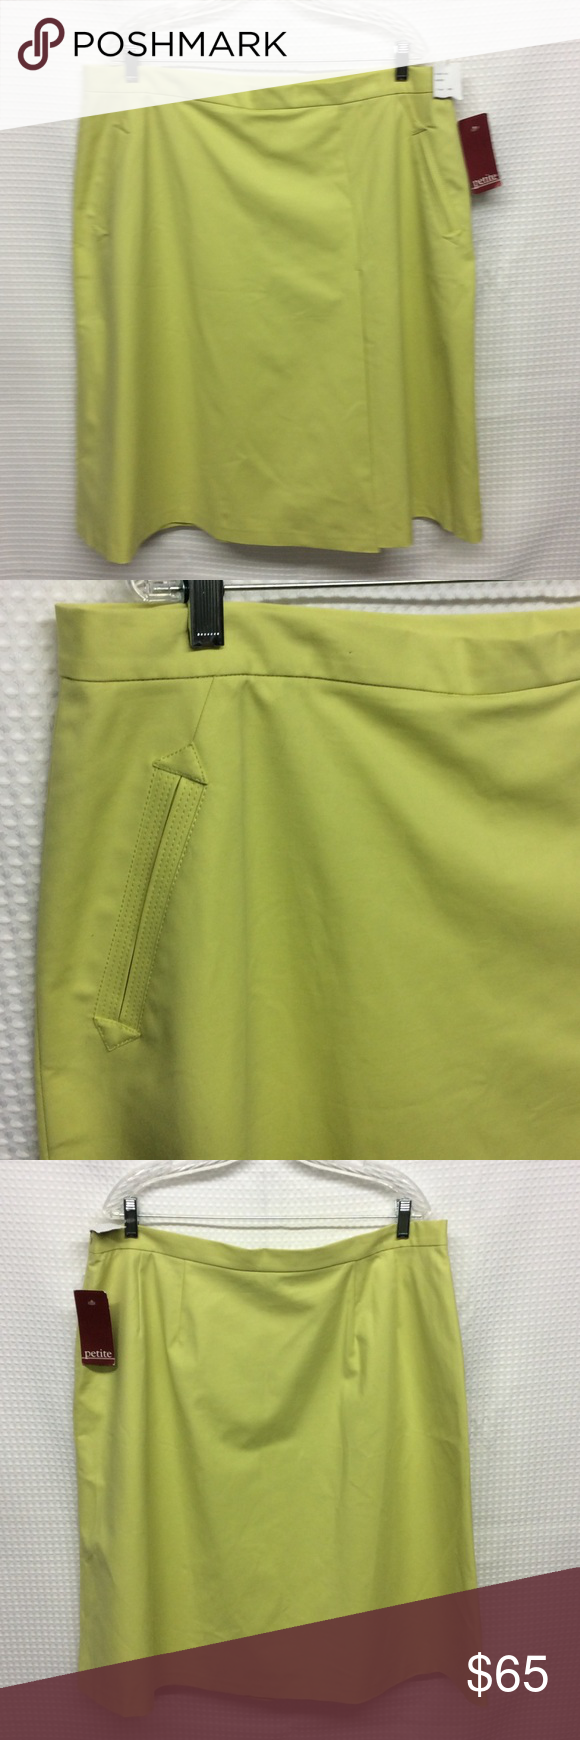 "LAFAYETTE 148 Chartreuse Skirt Plus Size 18P  NWT This very pretty Chartreuse Skirt from LAFAYETTE 148 New York, has the look of a wrap around. 96% cotton, 4% elastane, dry clean only. NWT! Plus Size 18 Petite. Unlined, front slant slip pockets with triple stitched border, side zipper with inside button. Waist 40"", hip 55"" a-line down to 68"", length 27"". Perfect for Spring and Summer! Thank you! Lafayette 148 New York Skirts A-Line or Full"